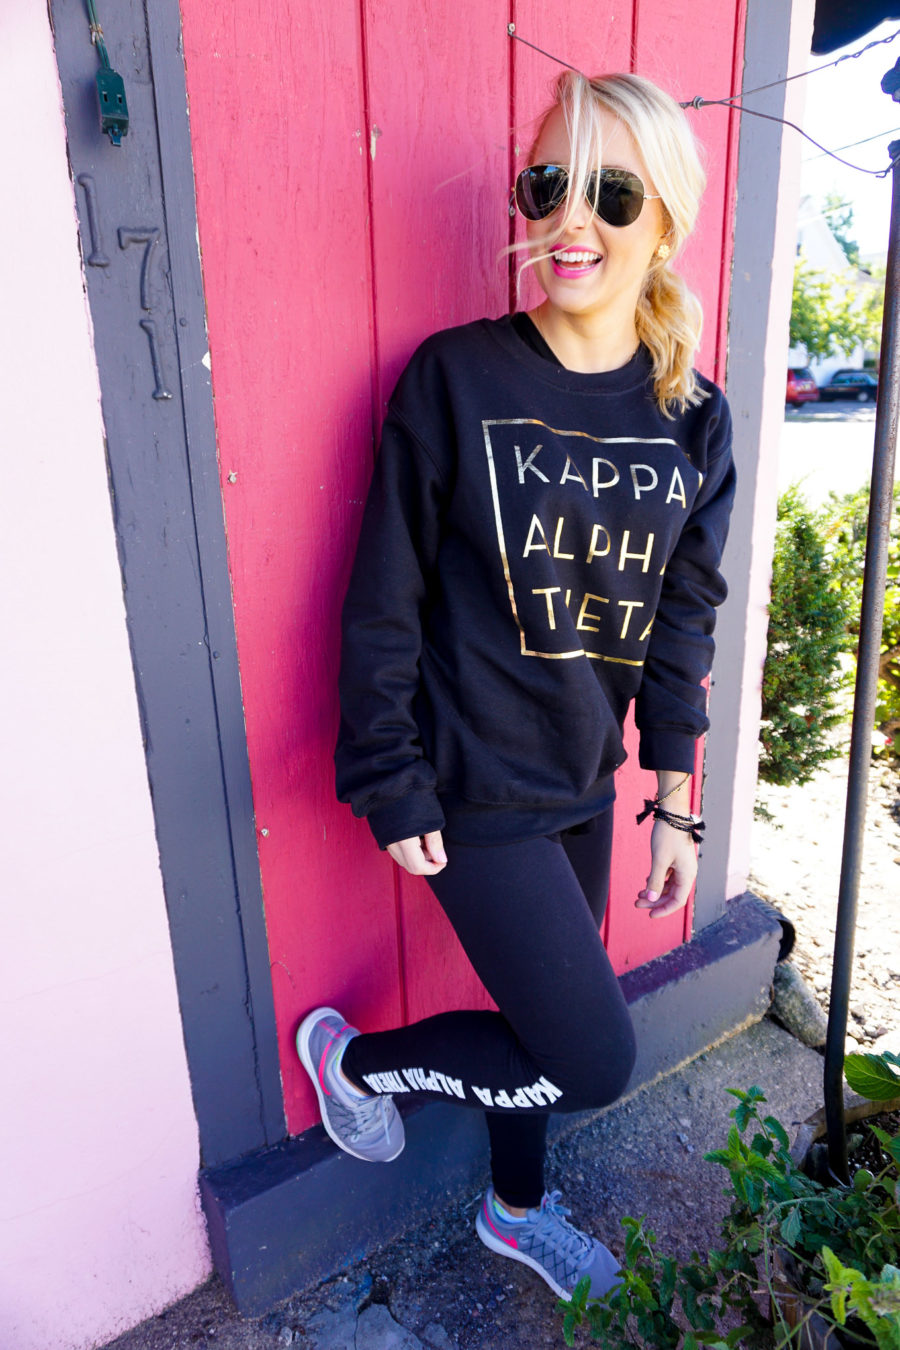 amy-littleson-from-i-believe-in-pink-wearing-kappa-alpha-theta-sorority-apparel-with-university-tees_-3